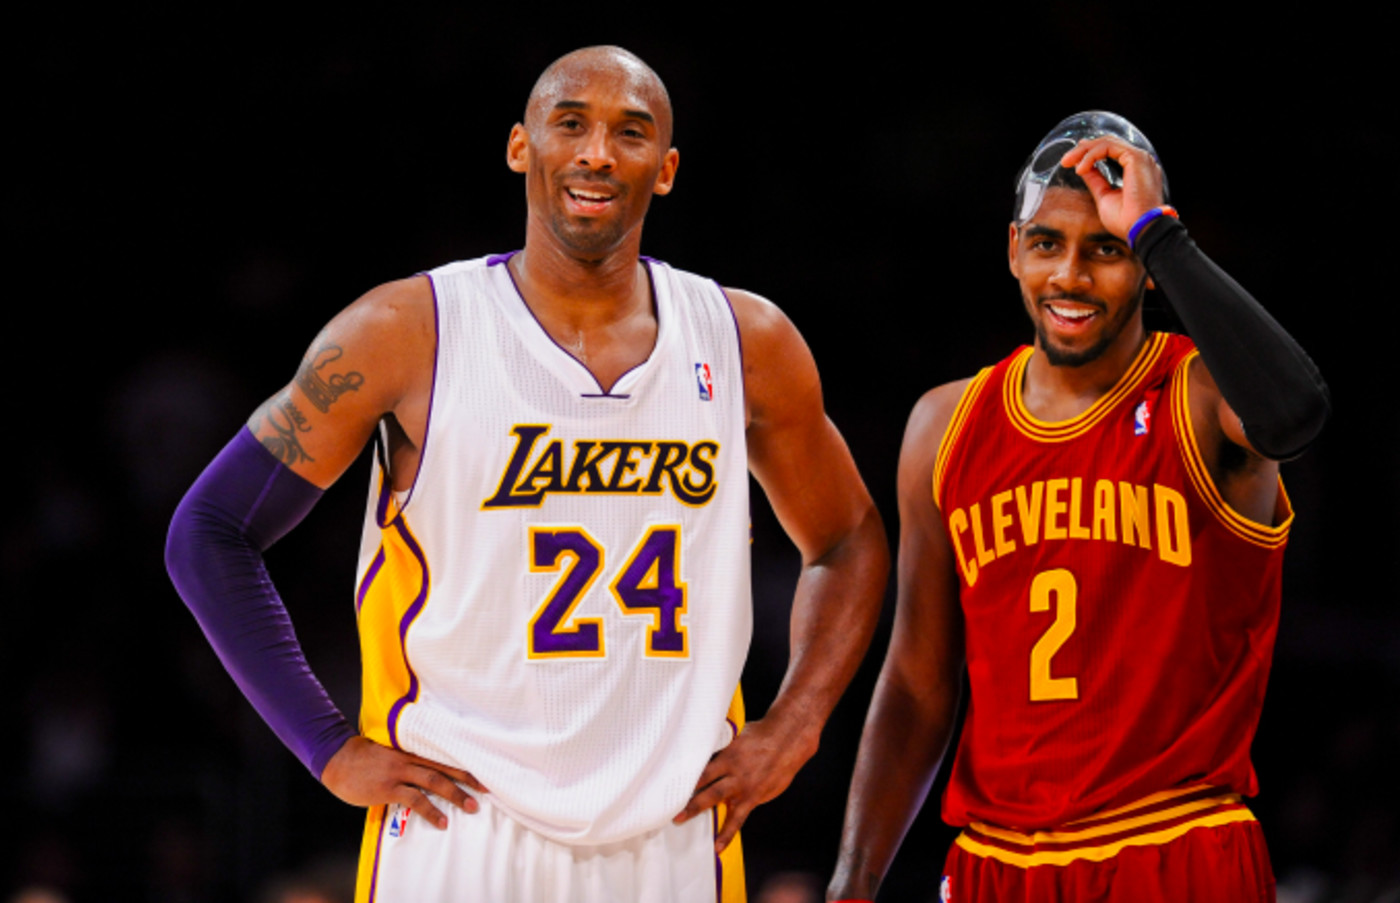 Kobe Bryant #24 of the Los Angeles Lakers and Kyrie Irving